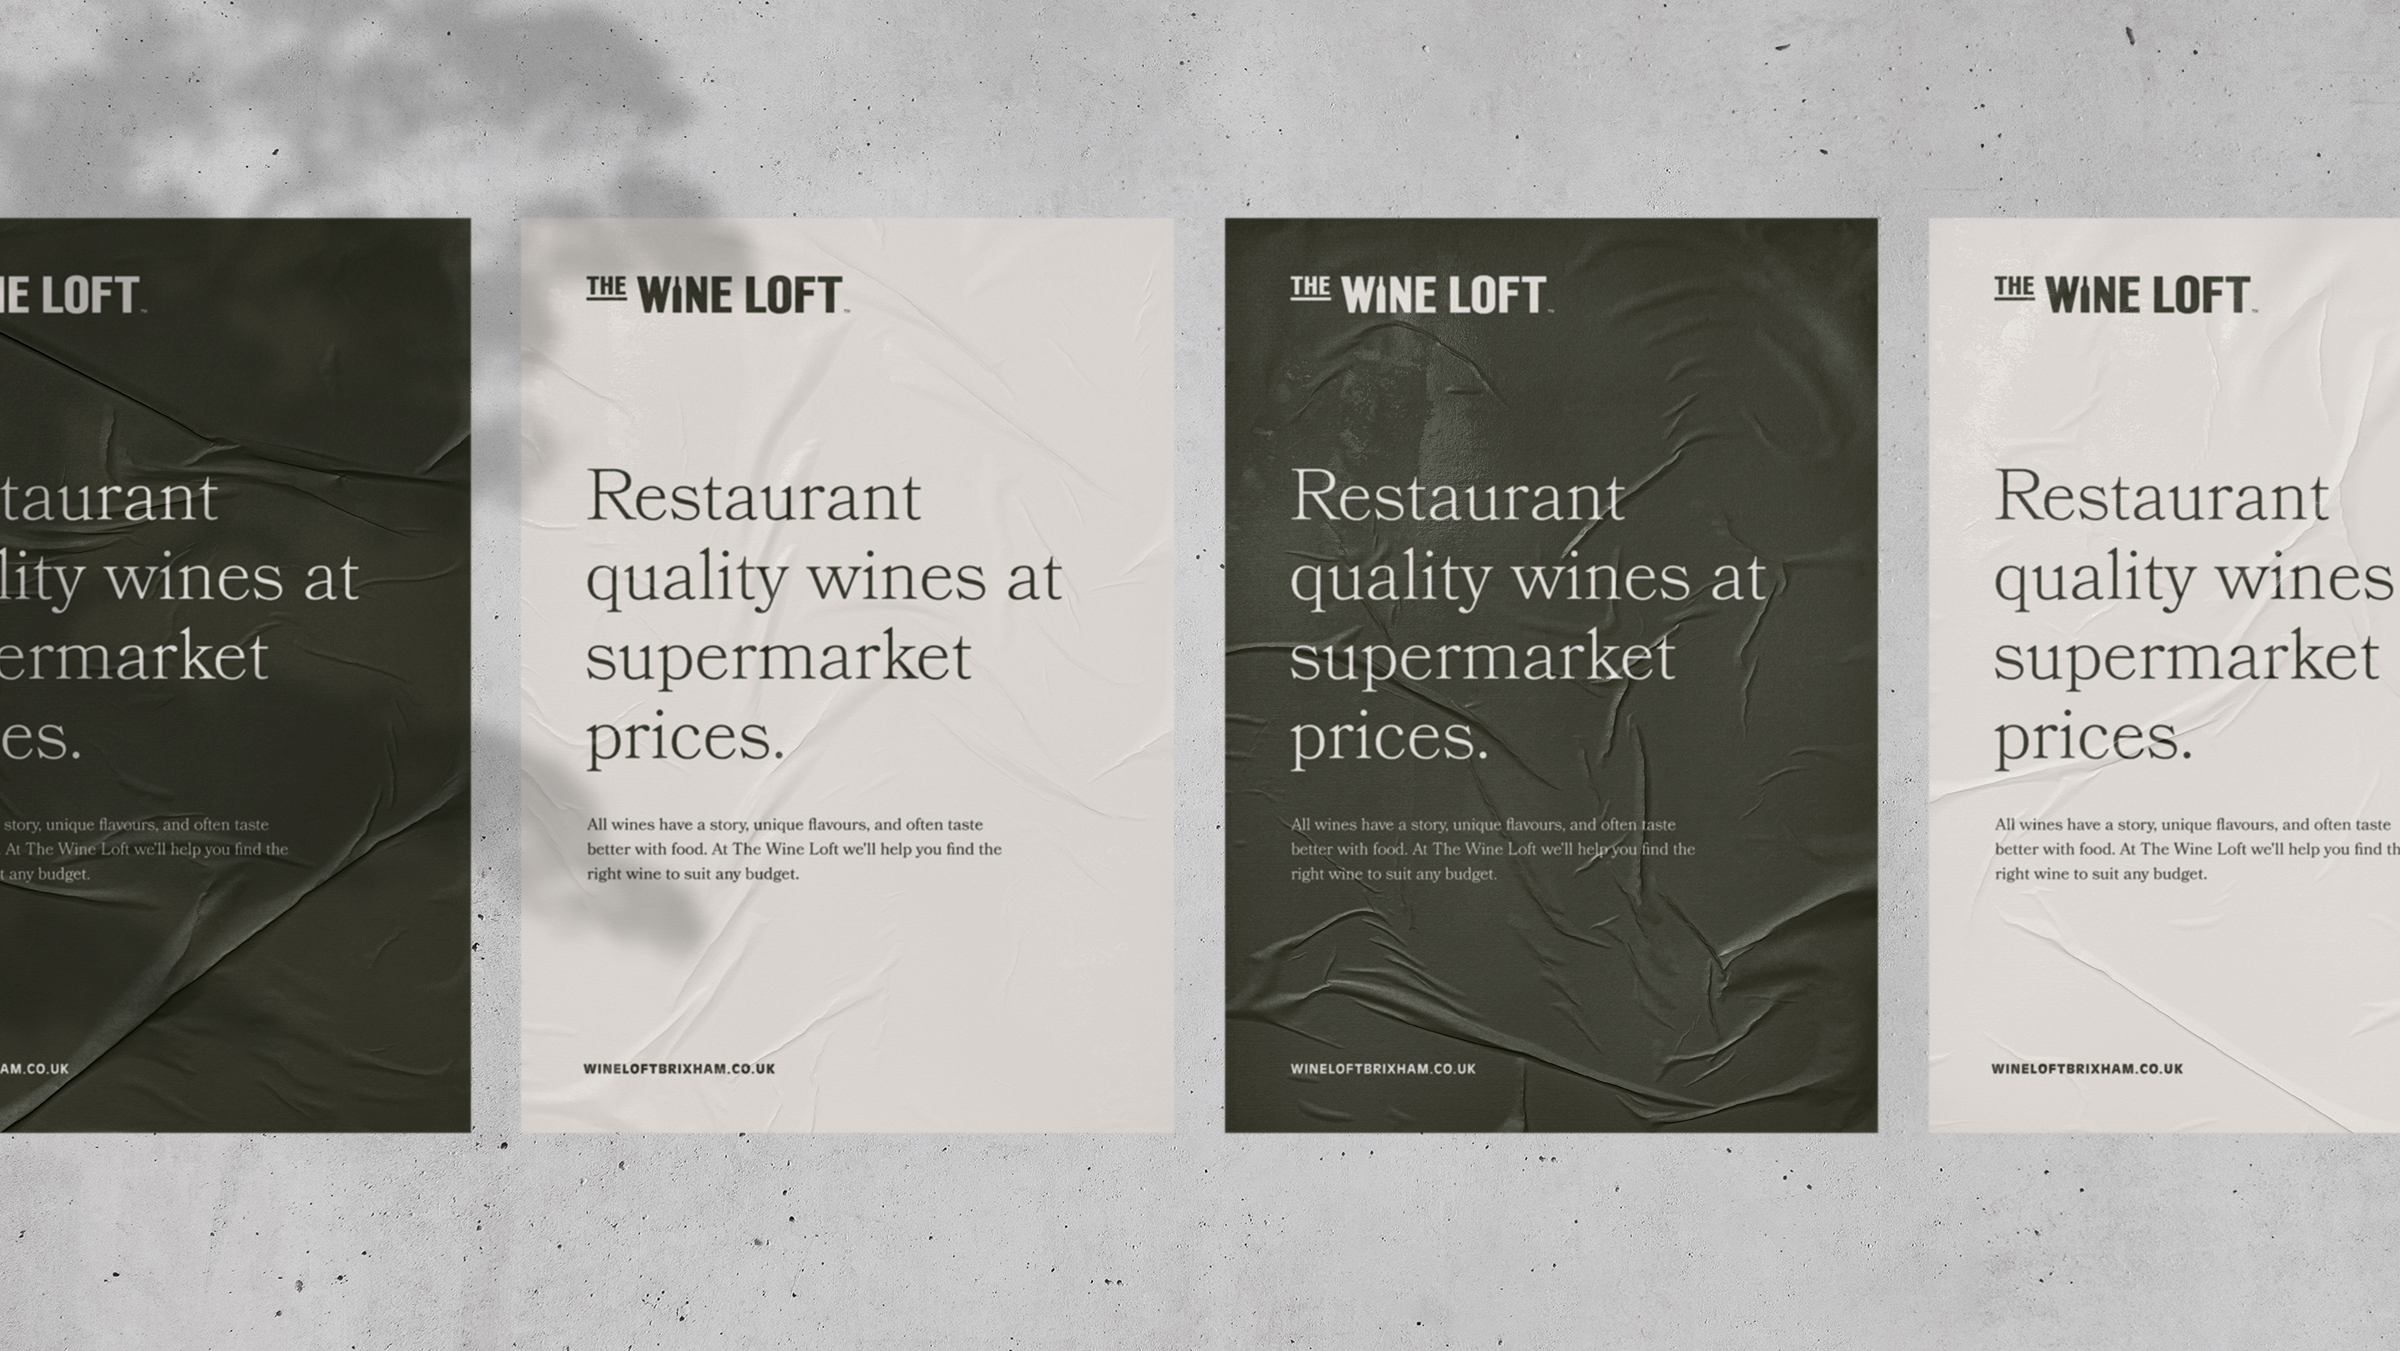 The Wine Loft brand marketing posters